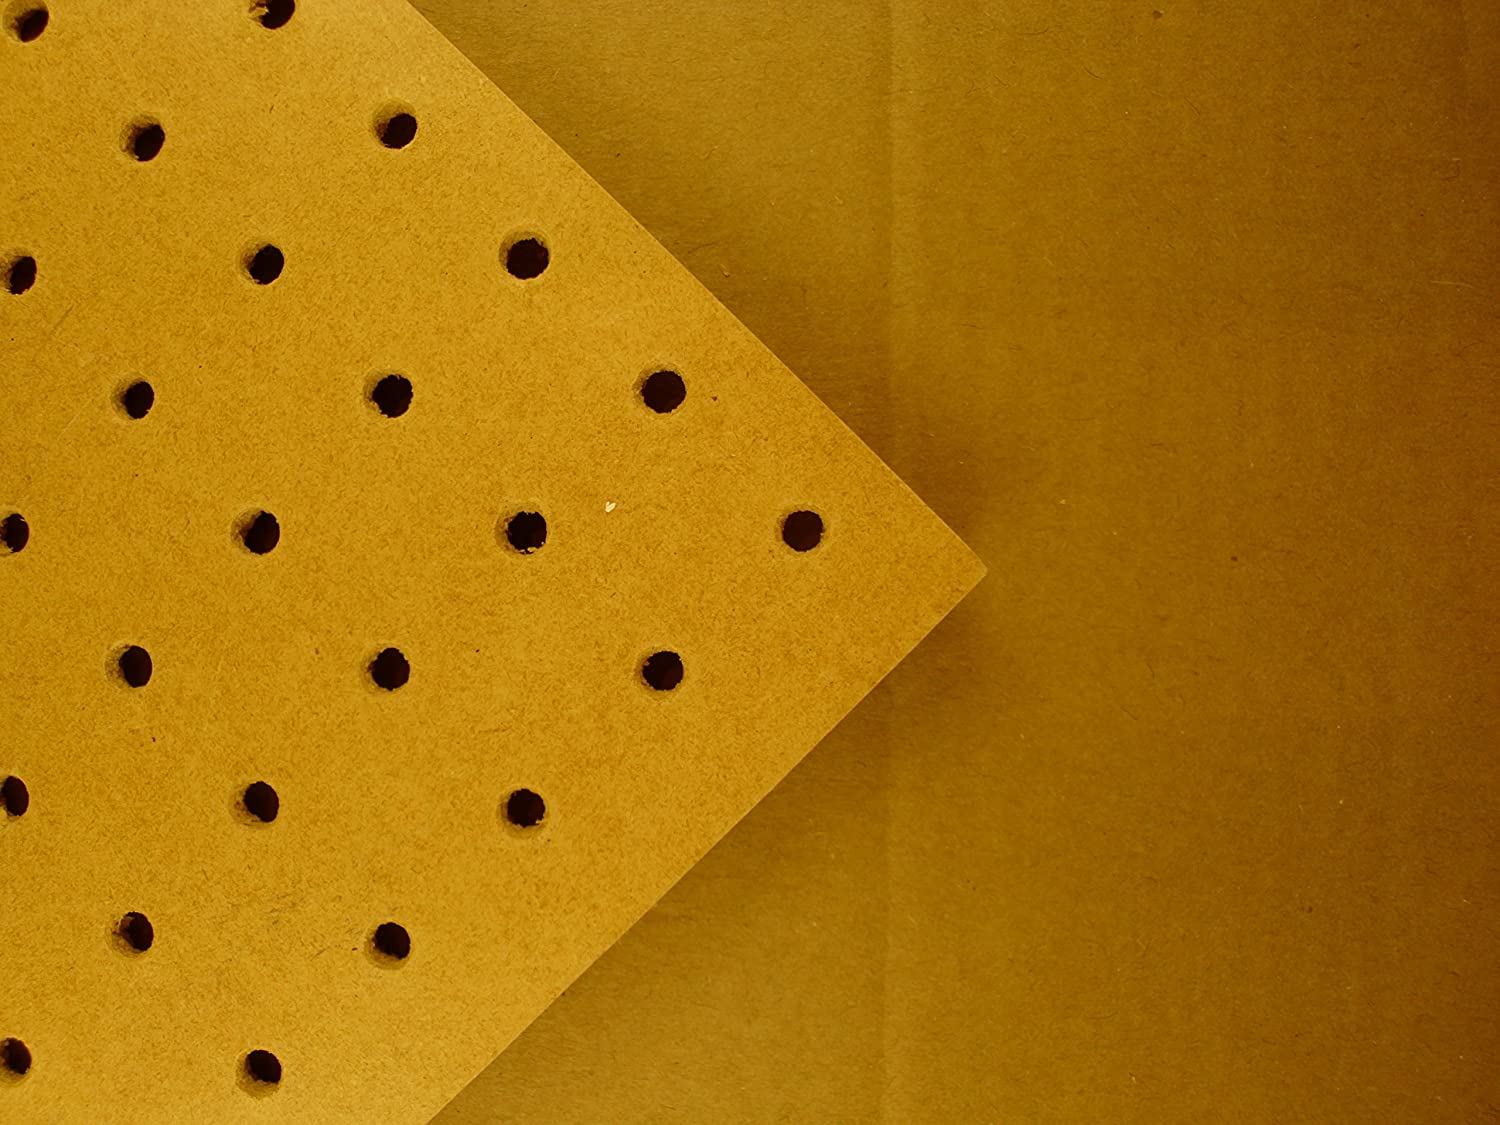 6mm Pegboard 1200mm x 300mm 25mm Hole centres masons